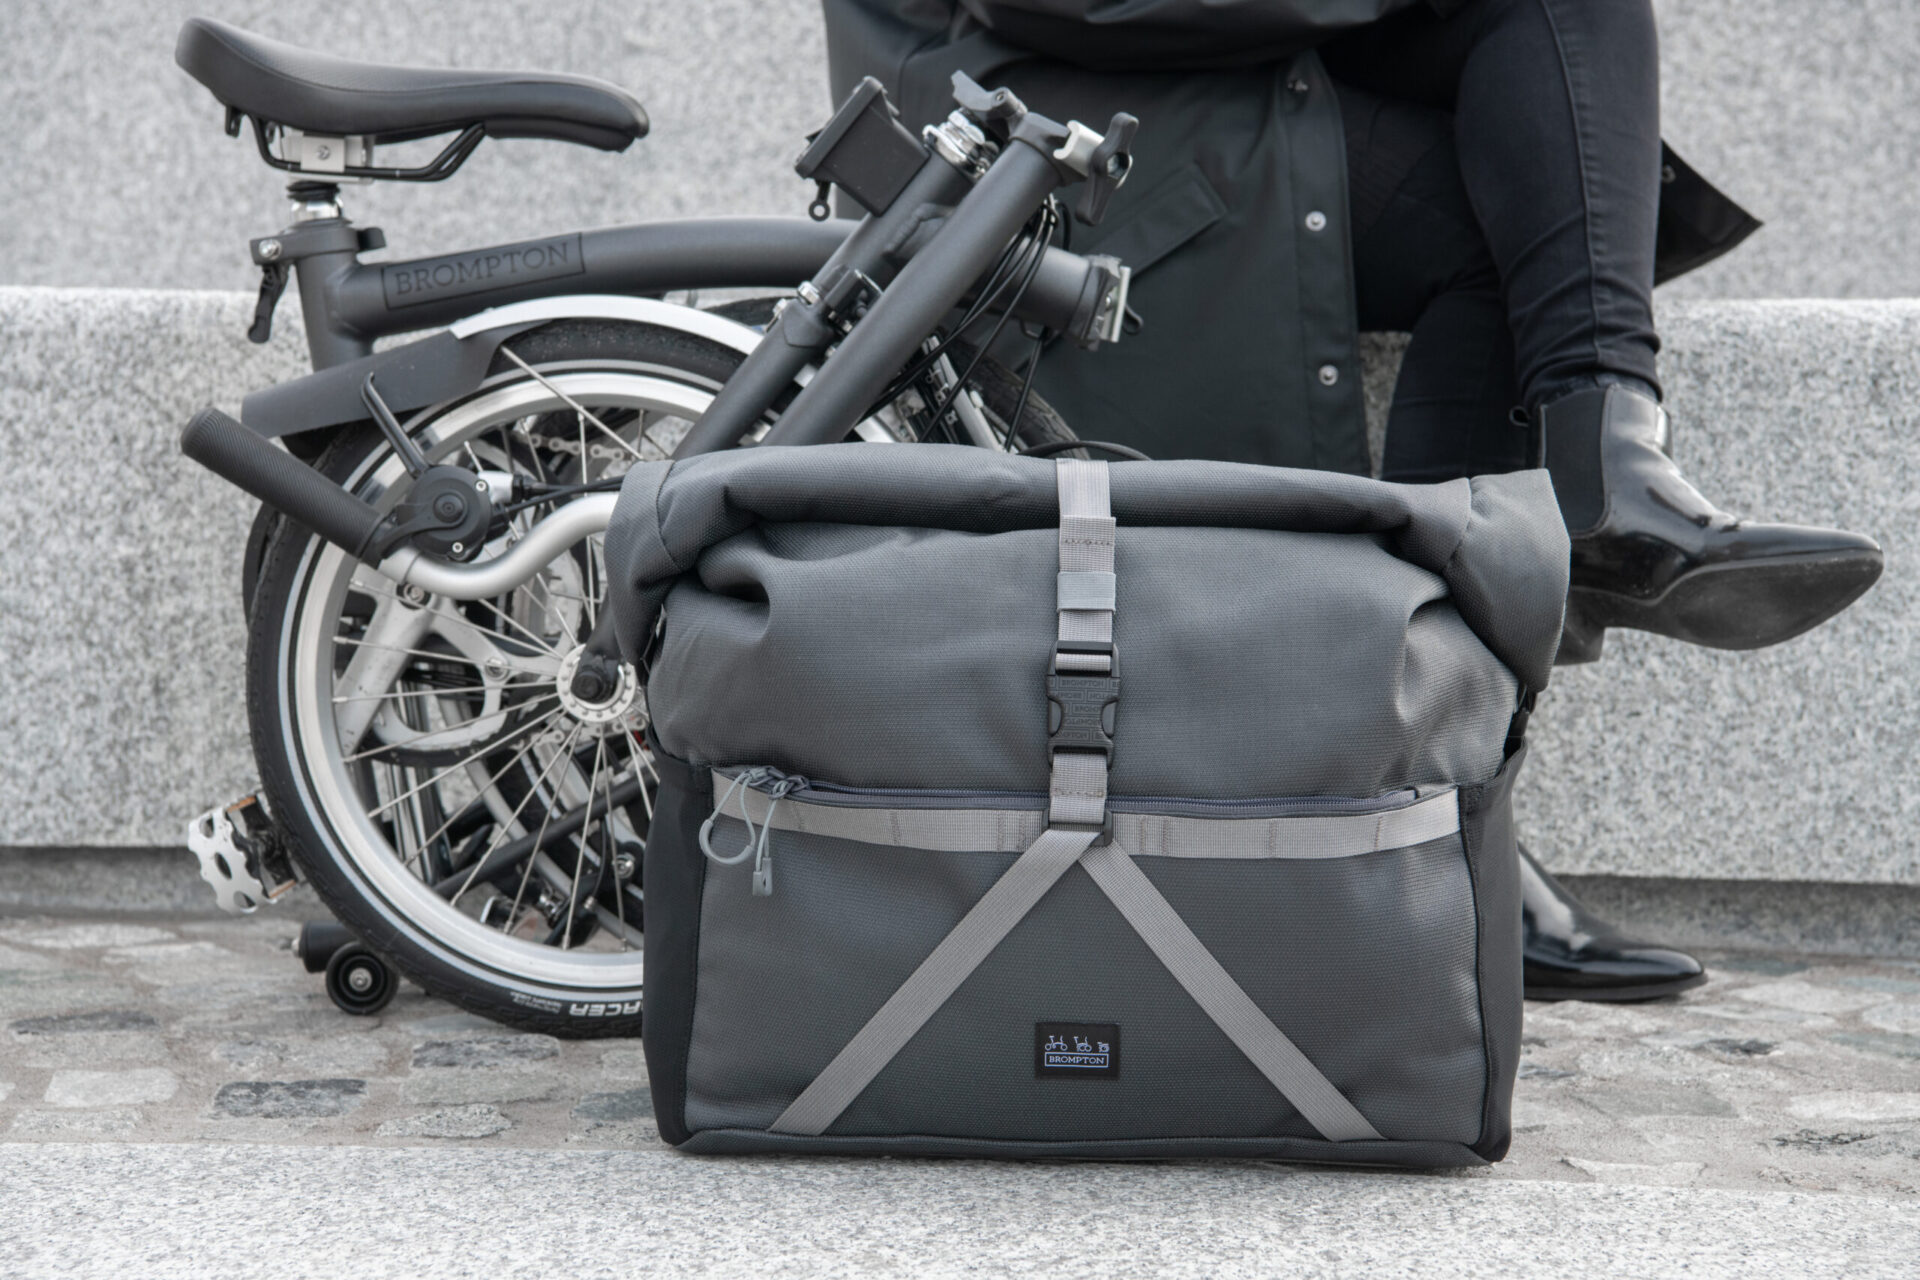 Brompton Launch New Luggage Range